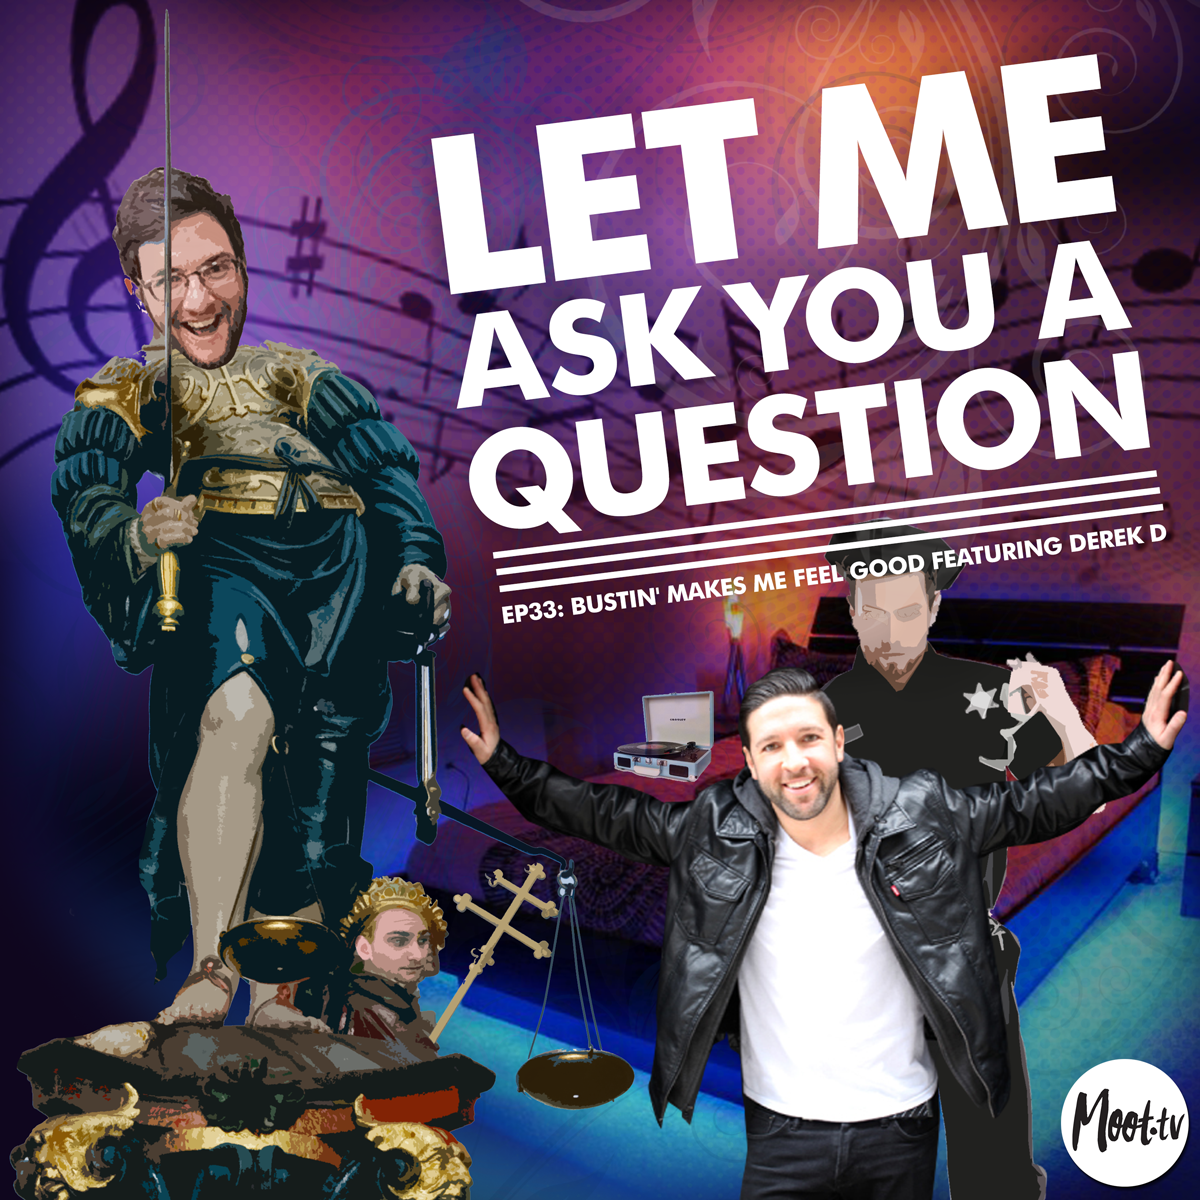 Let Me Ask You A Question Ep33: Bustin' Makes Me Feel Good